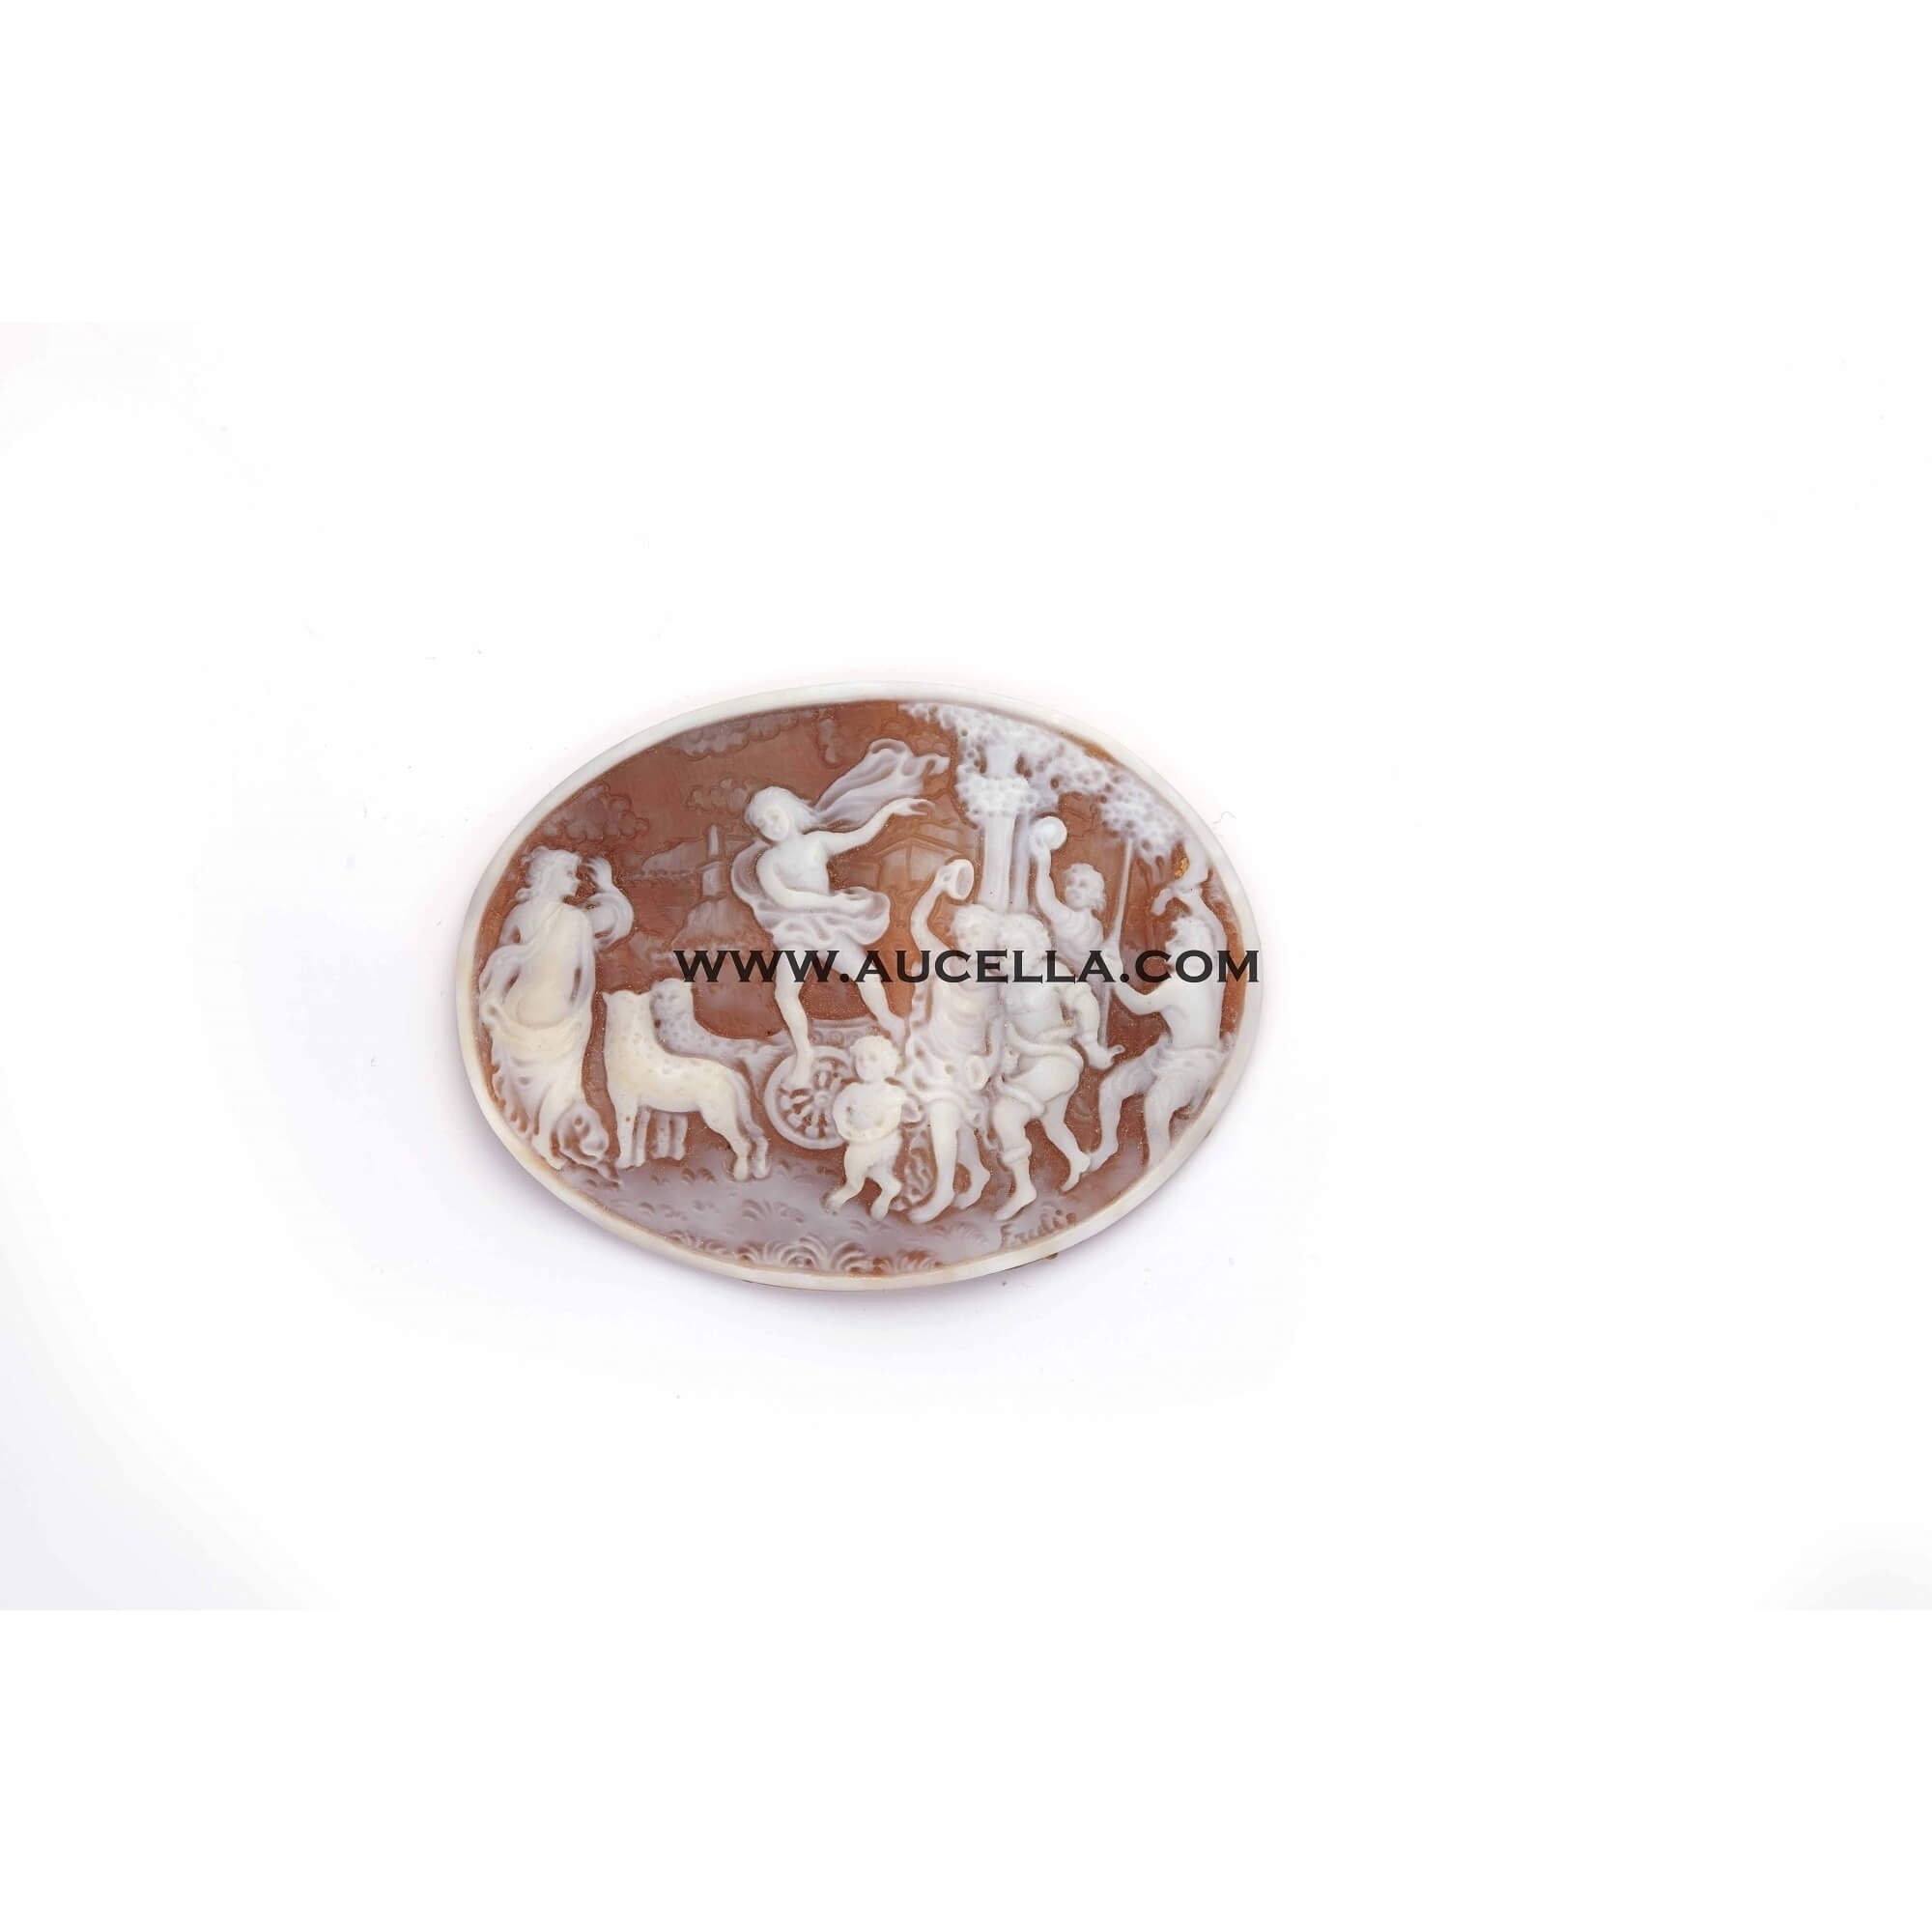 Sardonix antique cameo